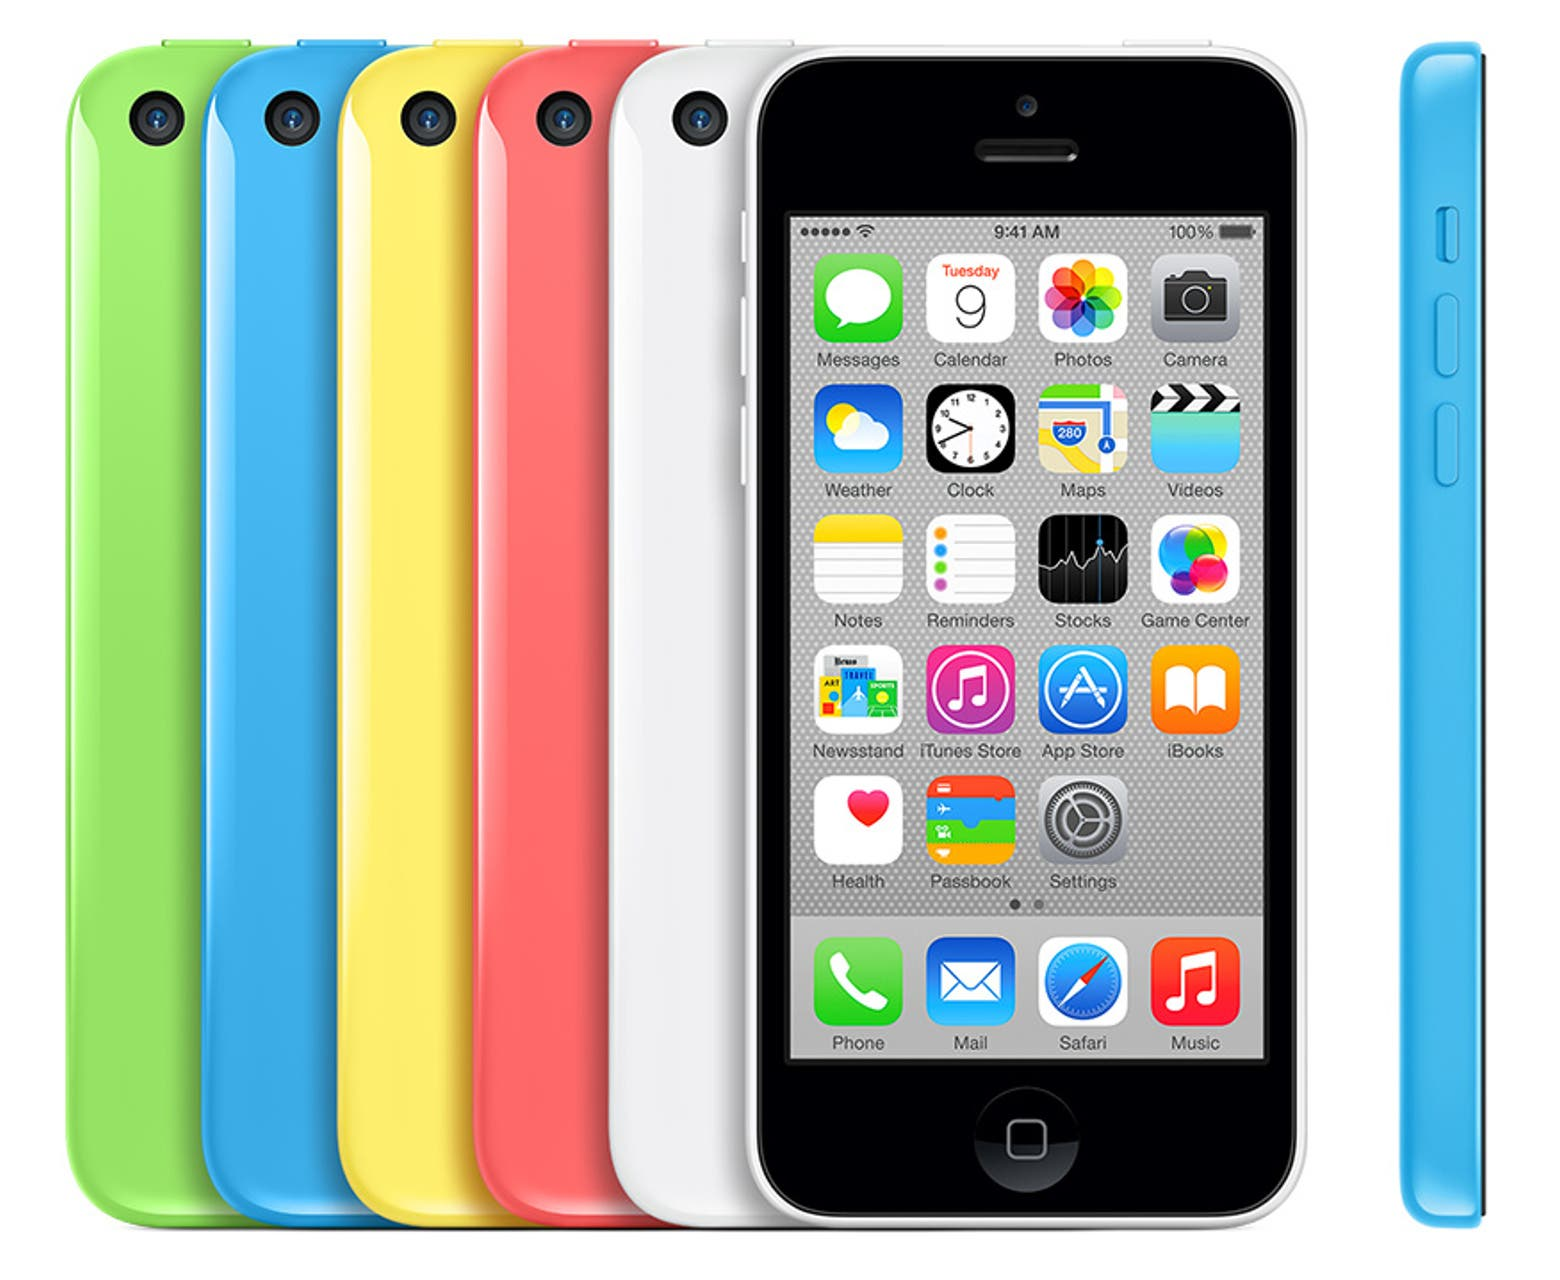 iphone 5c funktionen check beim kauf